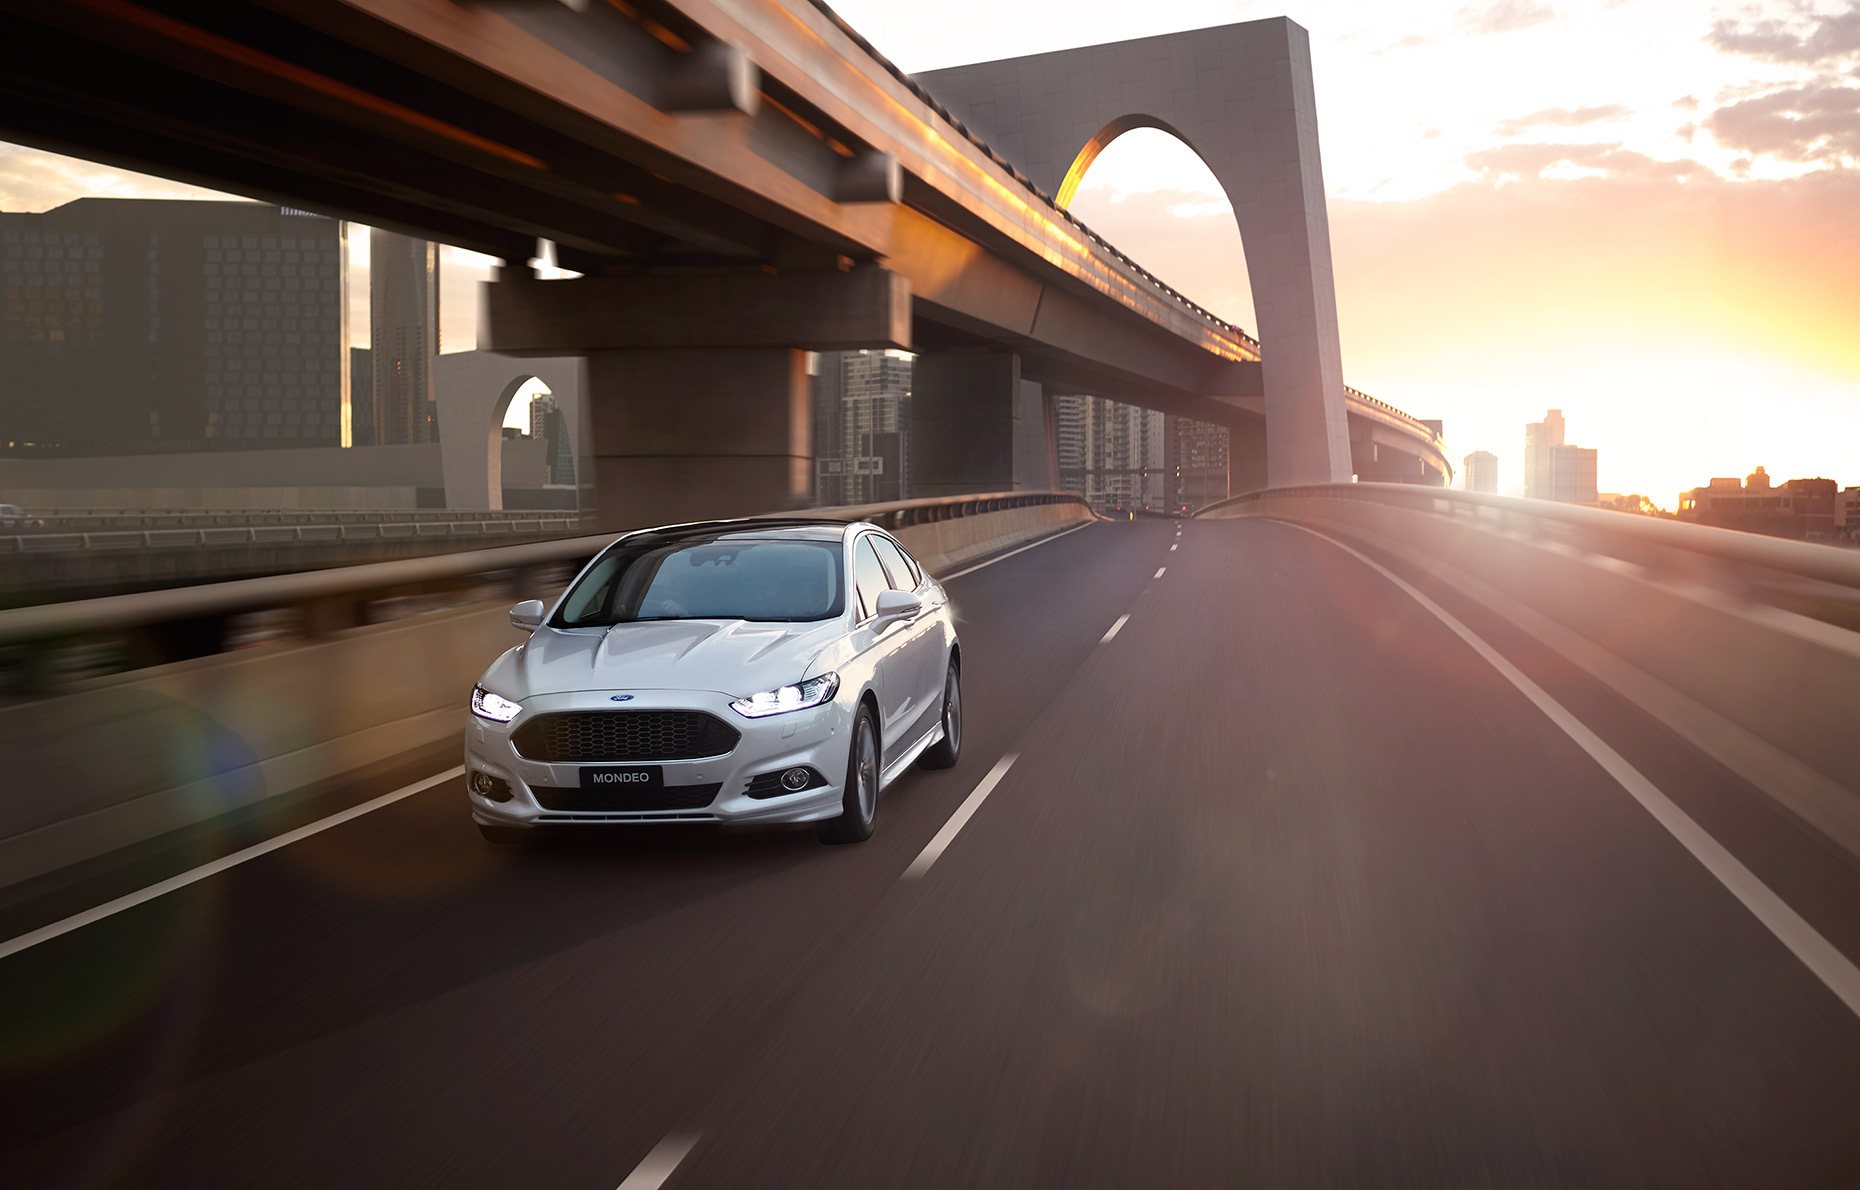 Mondeo-Front-Beauty-Lane-Keeping